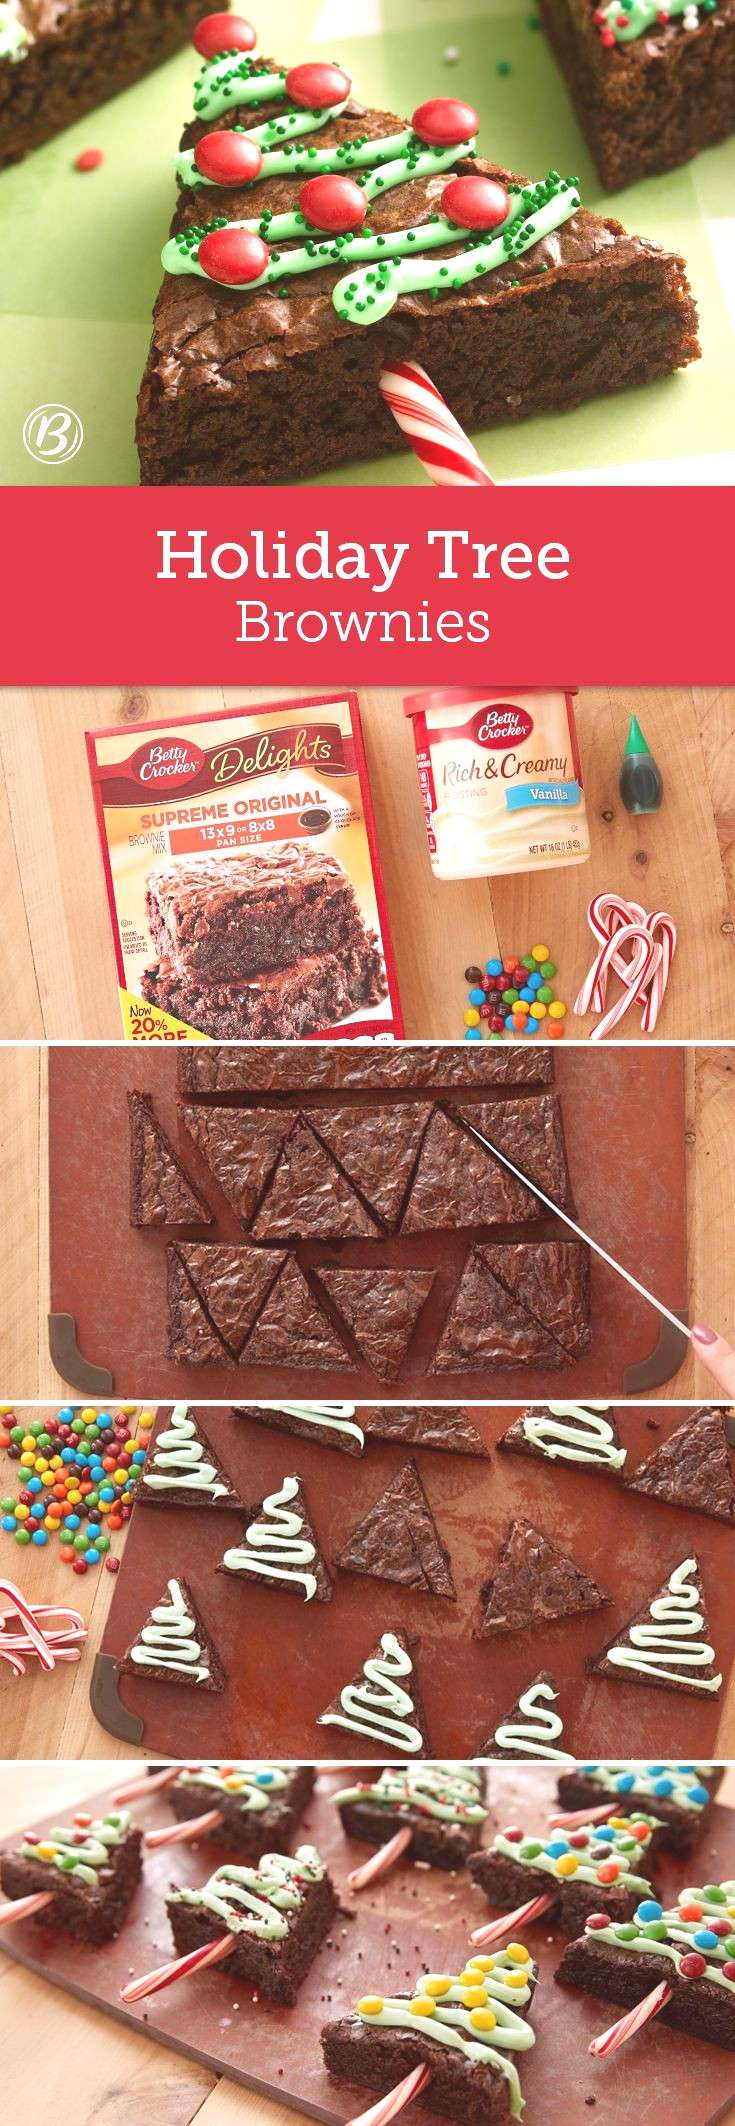 A pan of brownies gets extra holiday cheer when cut into triangles and decorated as Christmas trees